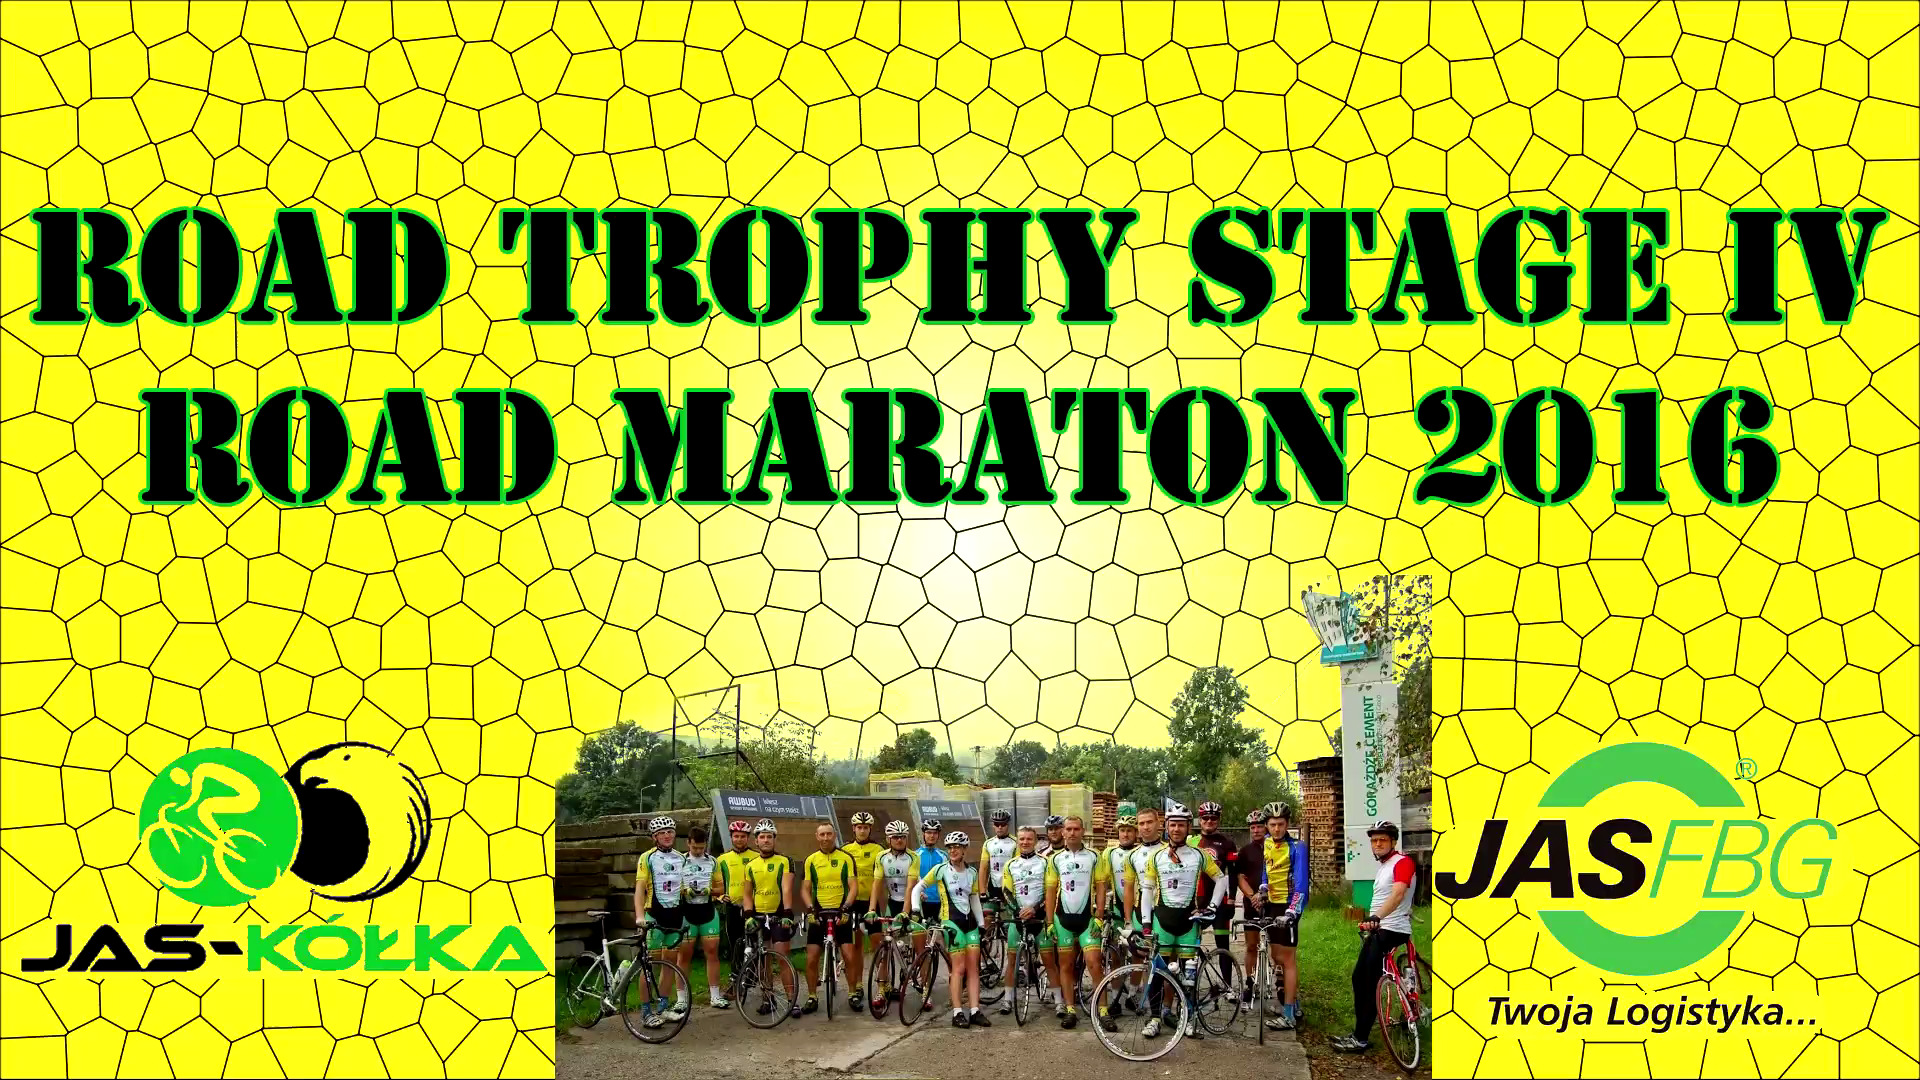 Road Trophy 2016 STAGE IV